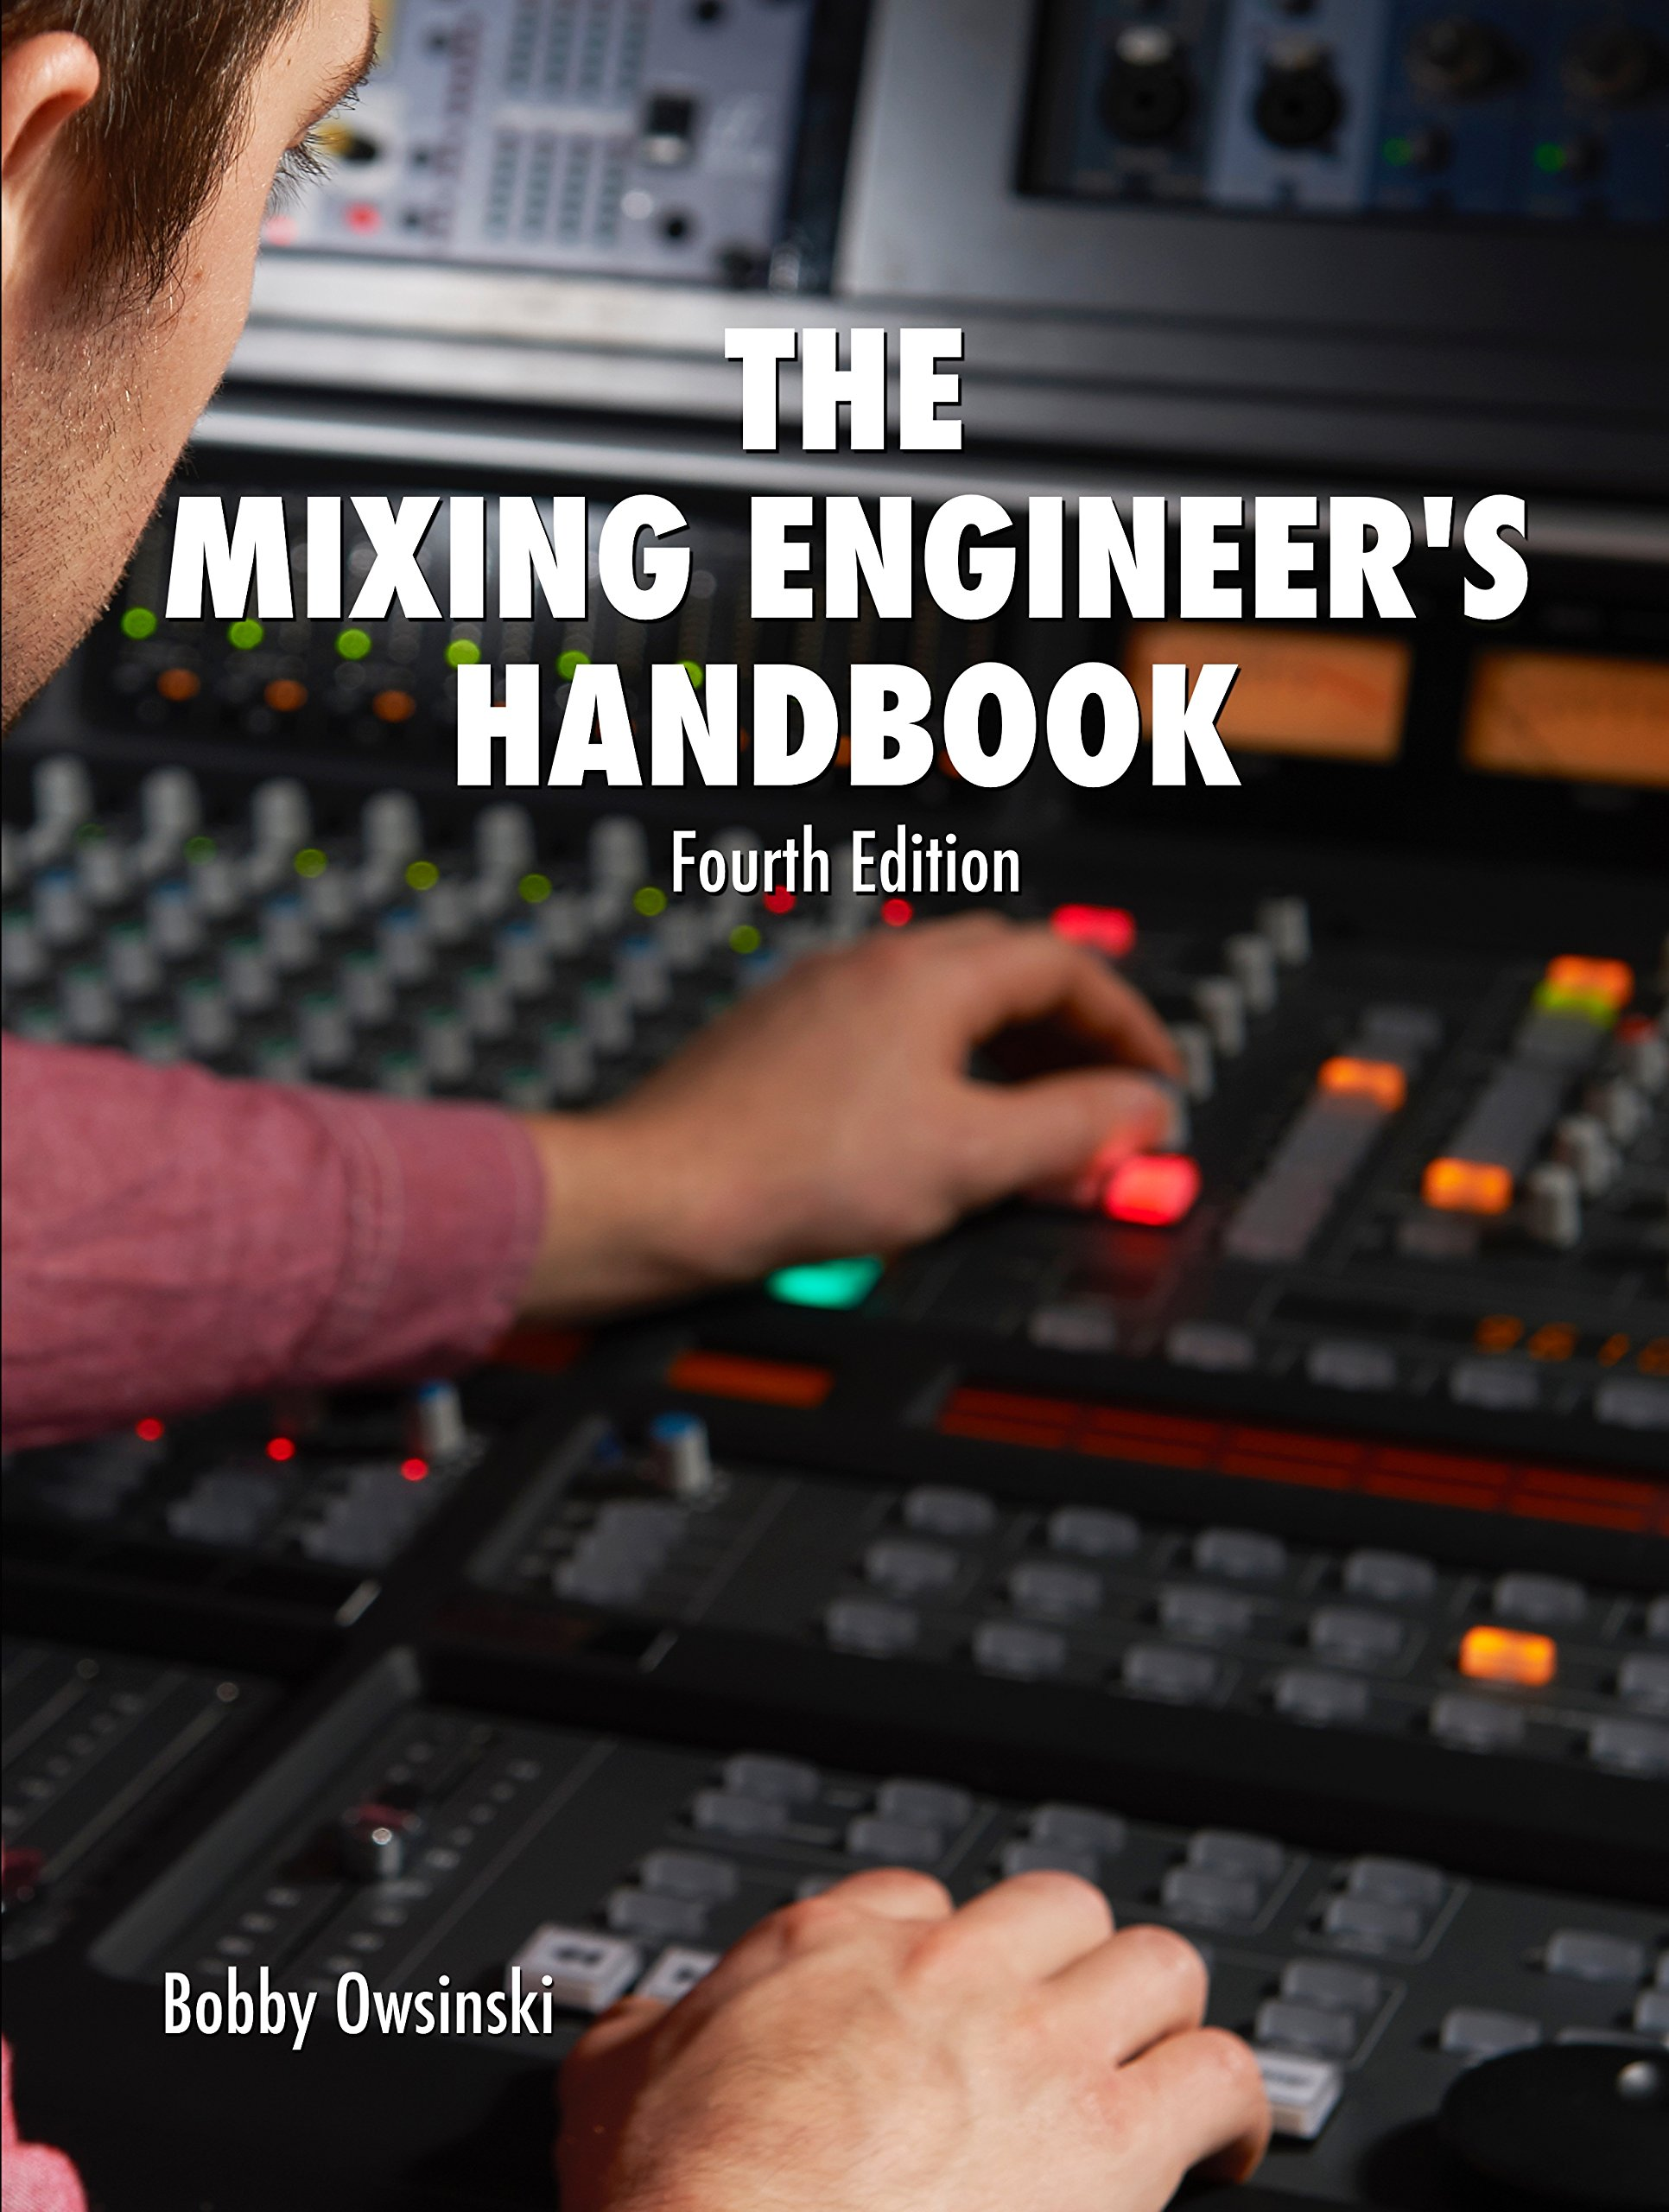 Image OfThe Mixing Engineer's Handbook 4th Edition (English Edition)